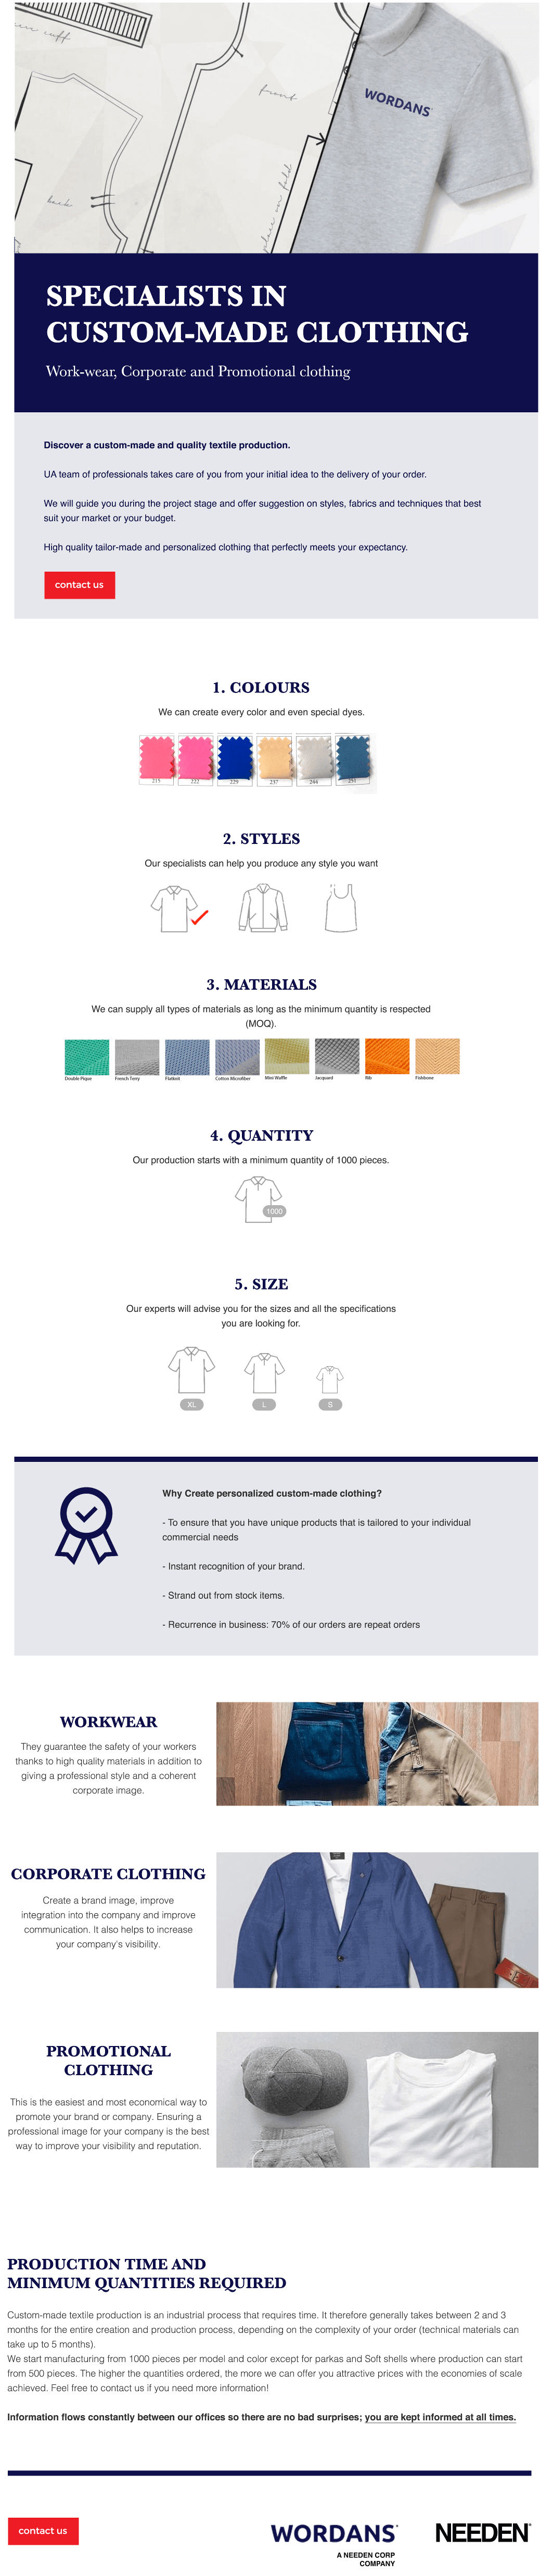 Specialists in custom-made clothing